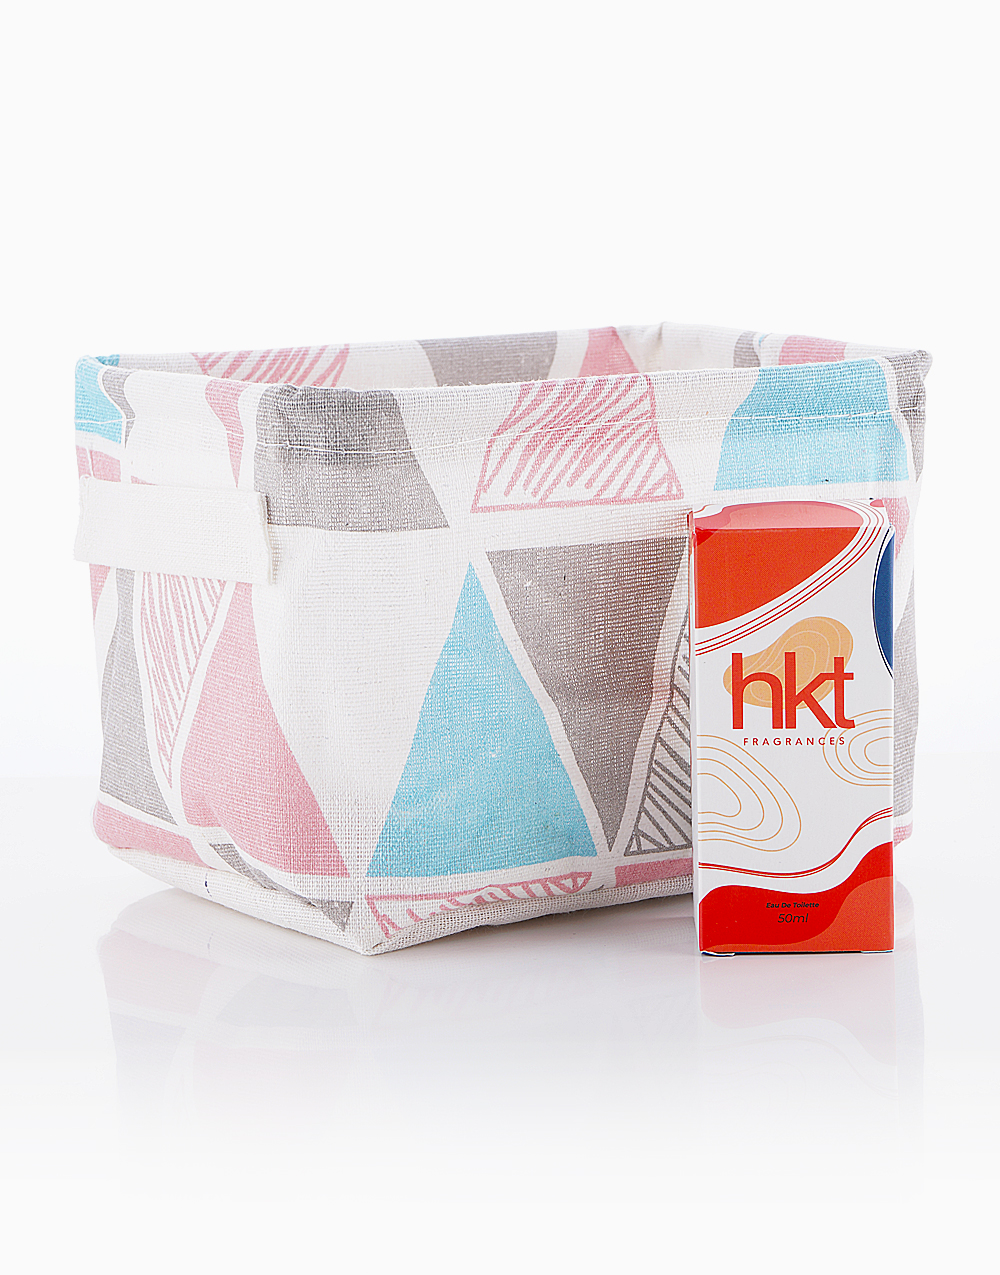 Perfume for Women in Boss Babe + Storage Organizer in Multi Color by HKT Fragrances